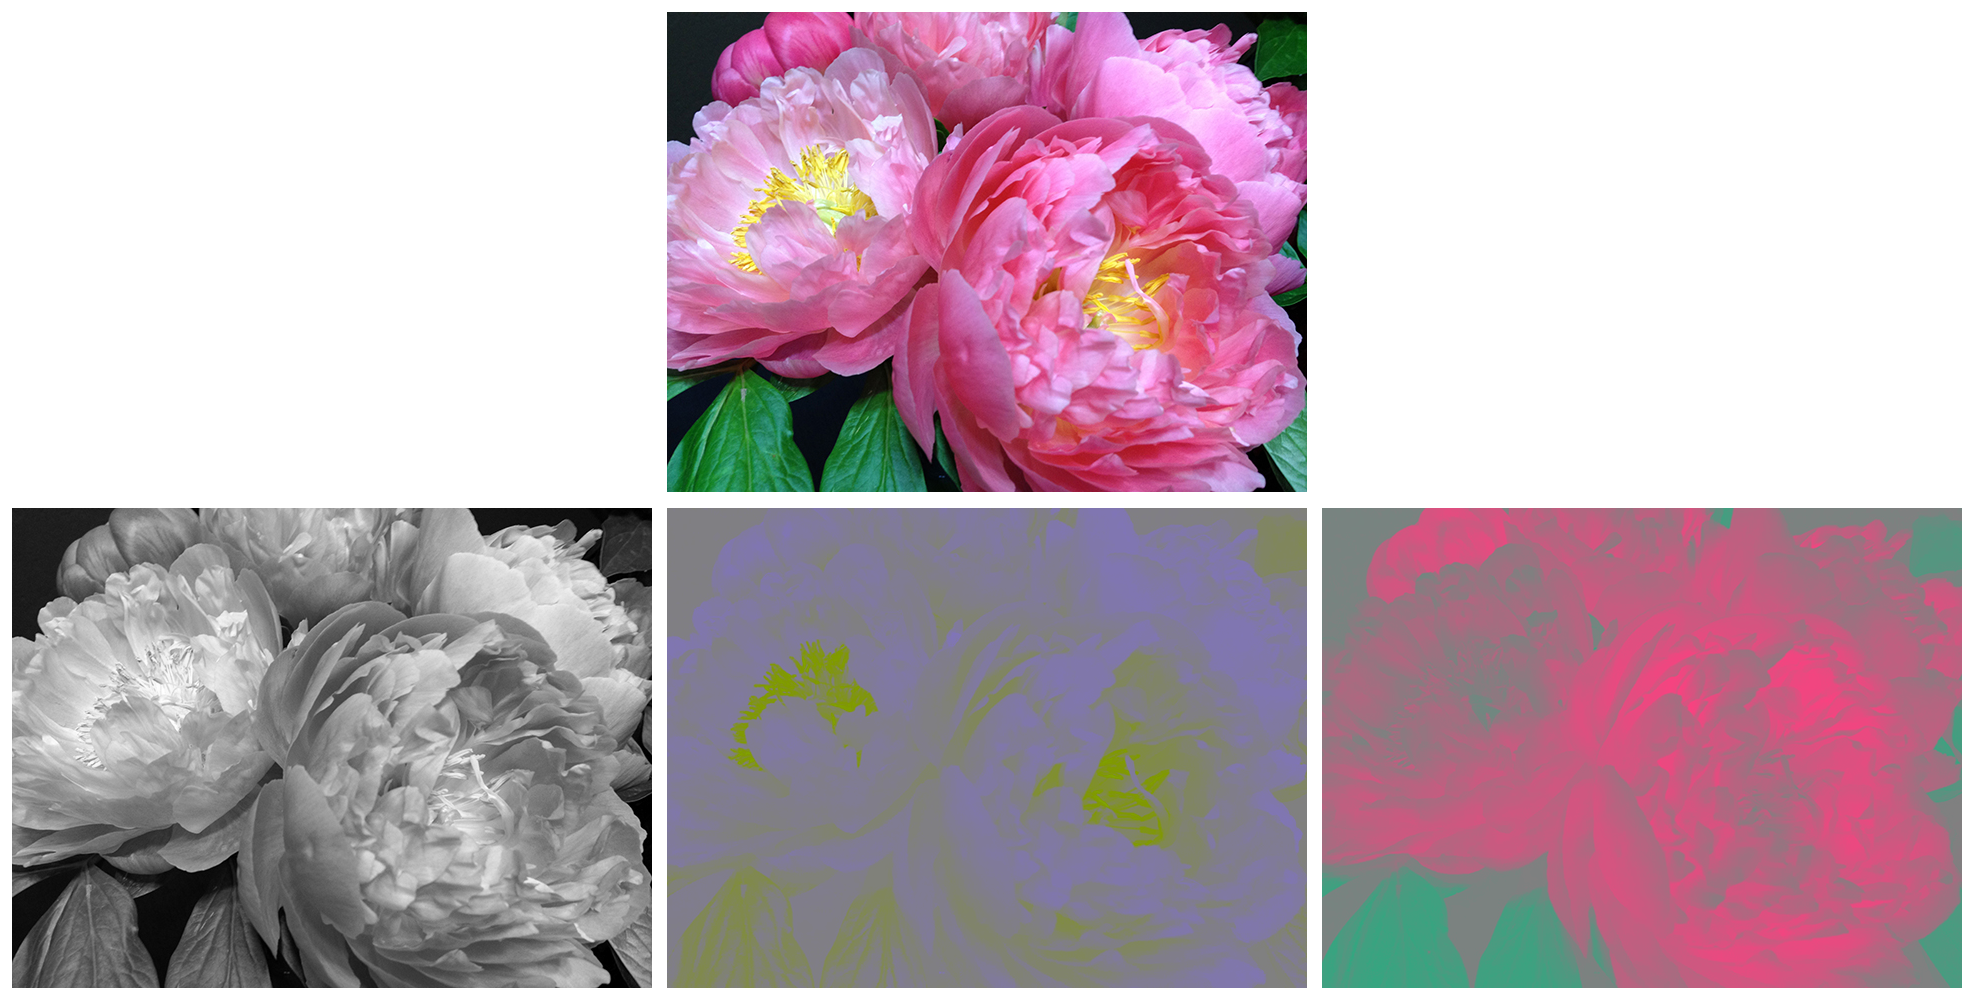 Photos showing an image separated into luminance and chrominance channels.